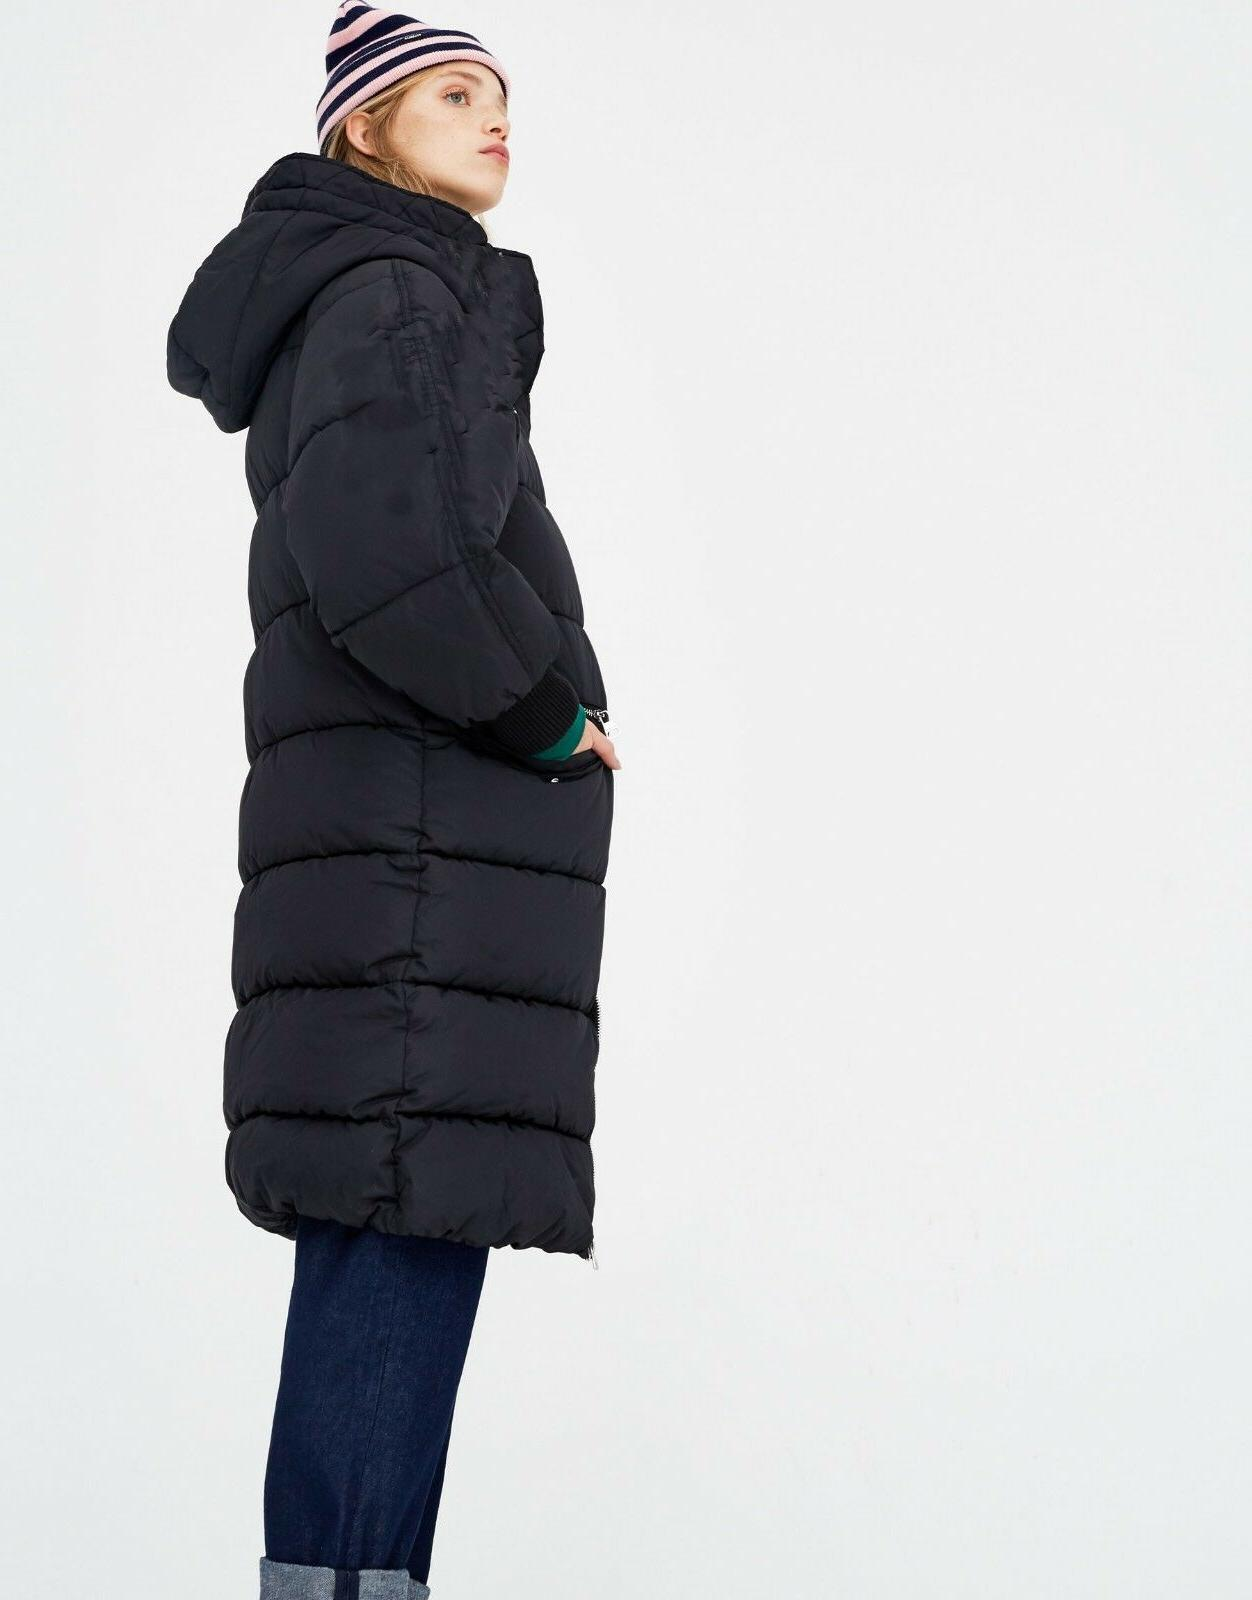 Roiii Winter Hood Plus Long Parka US Size